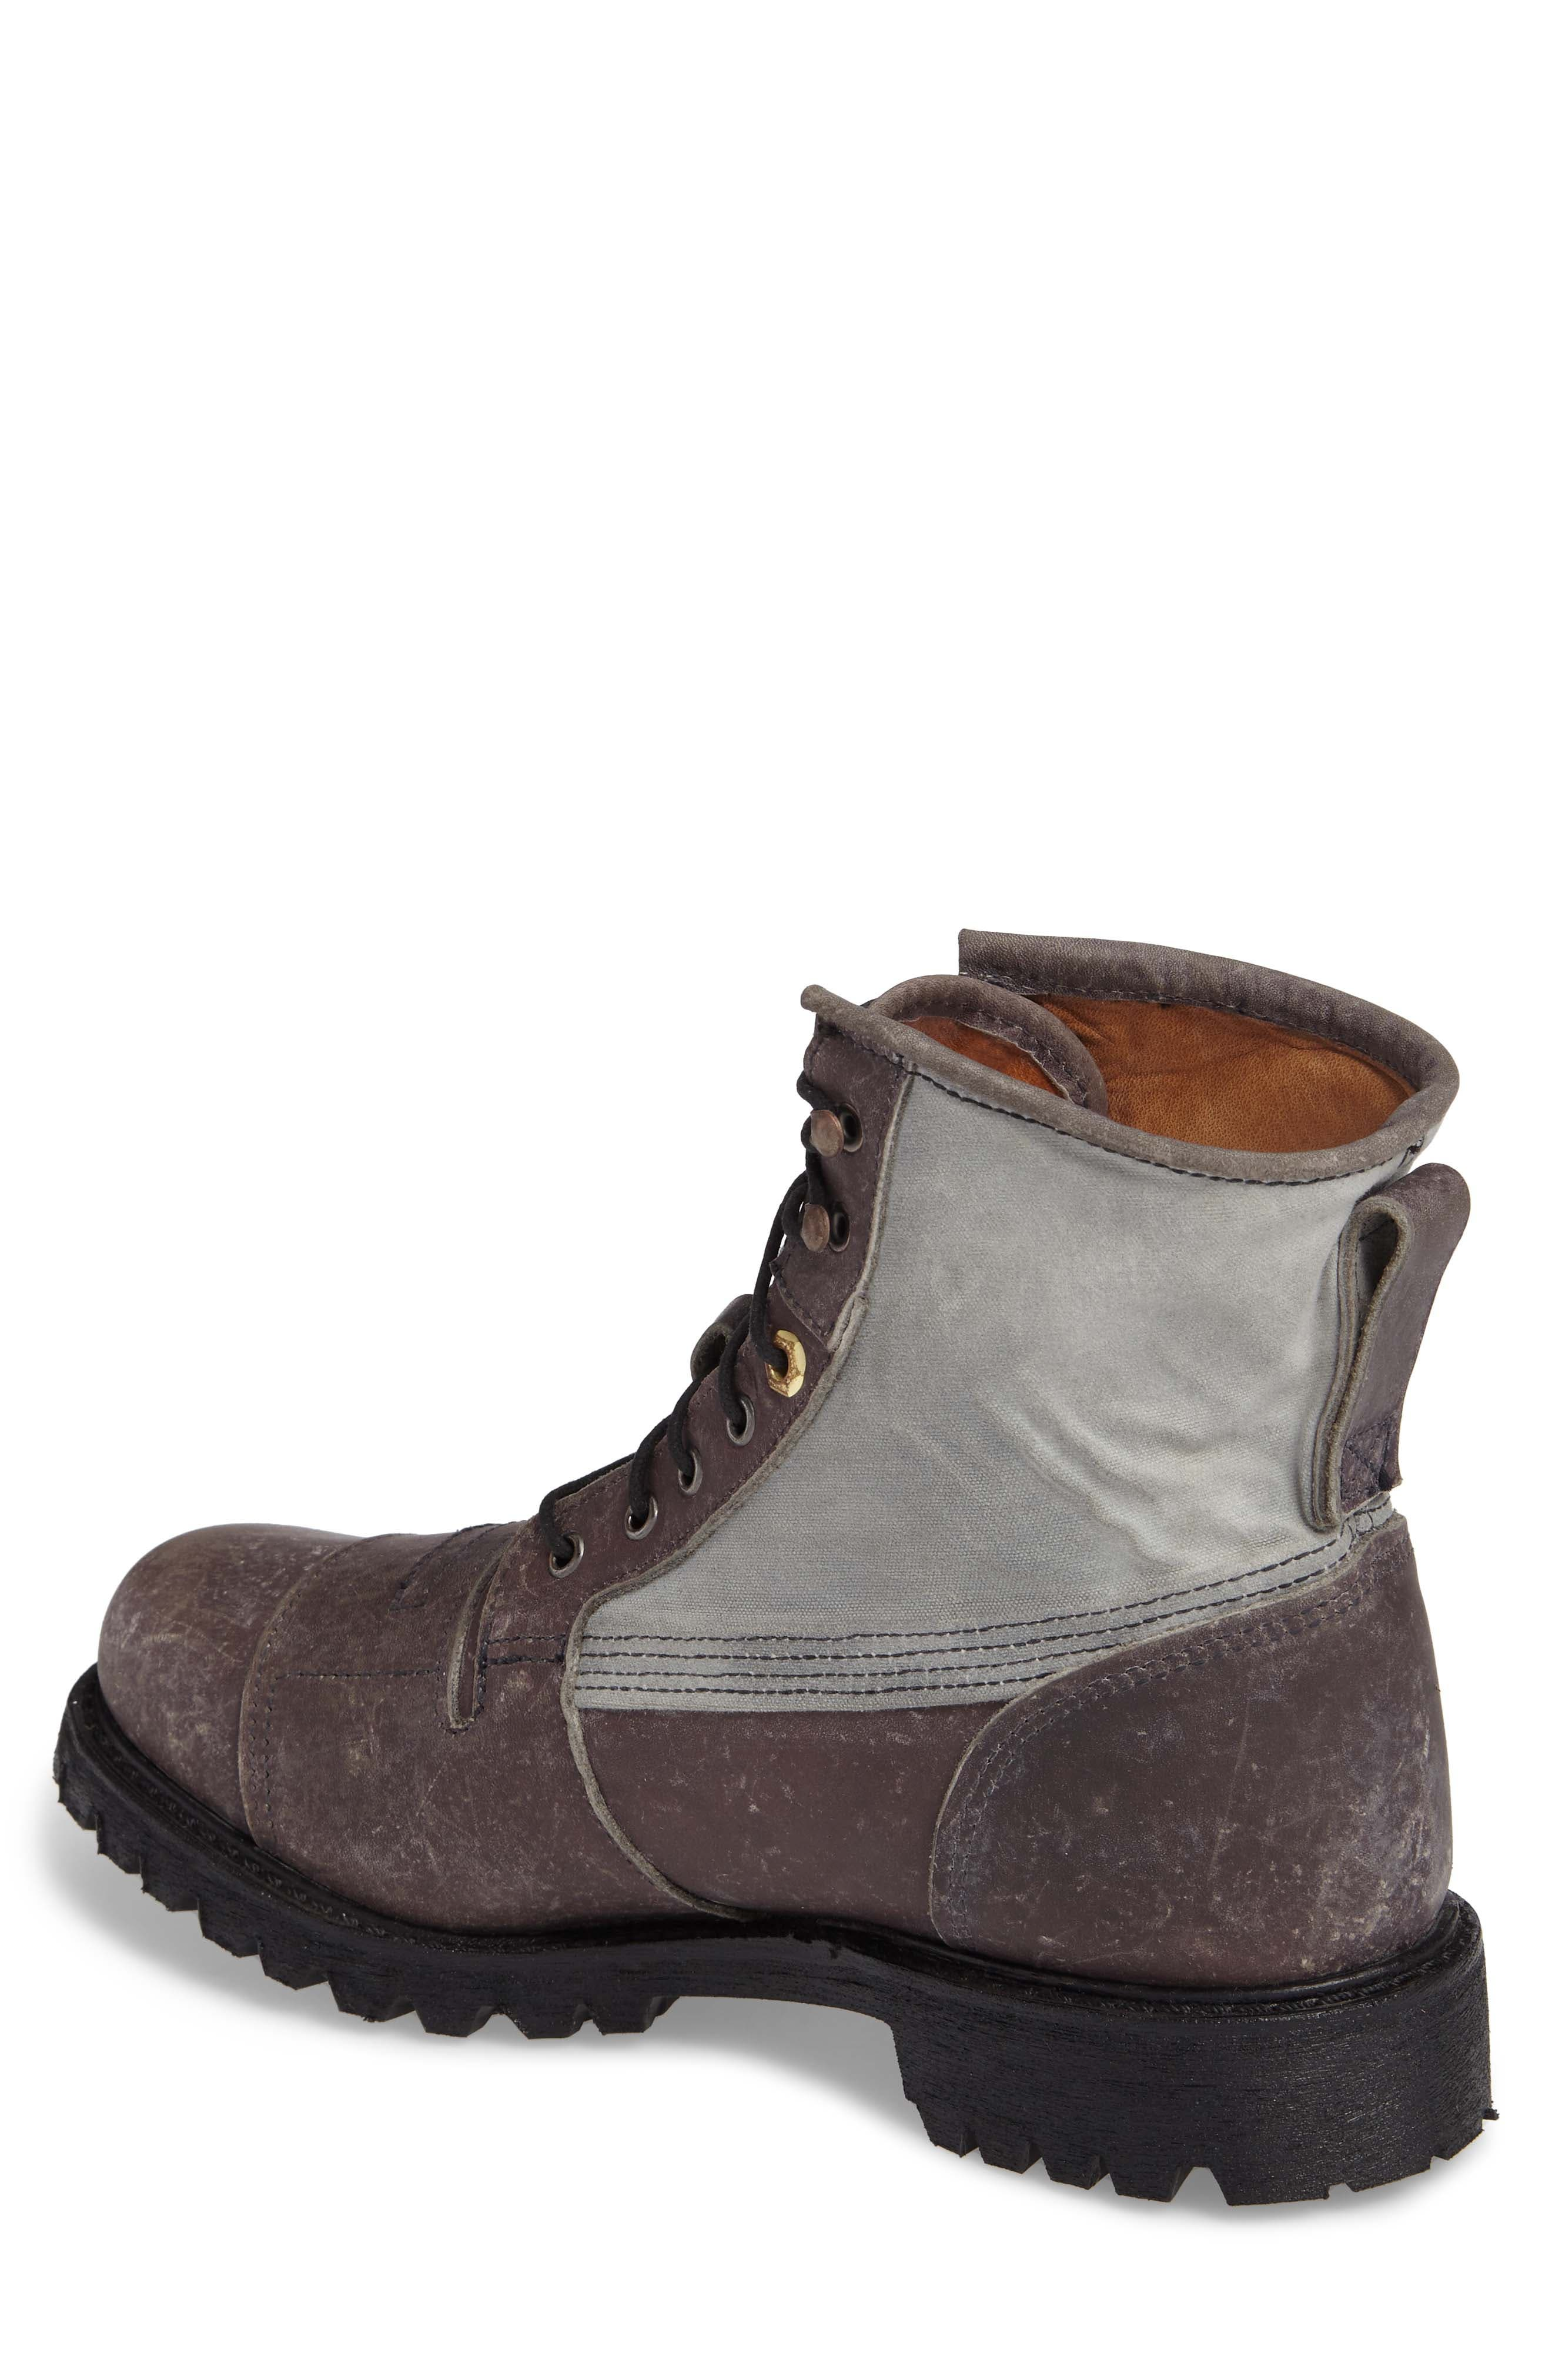 Smuggler's Notch Boot,                             Alternate thumbnail 2, color,                             Dark Grey Boundry